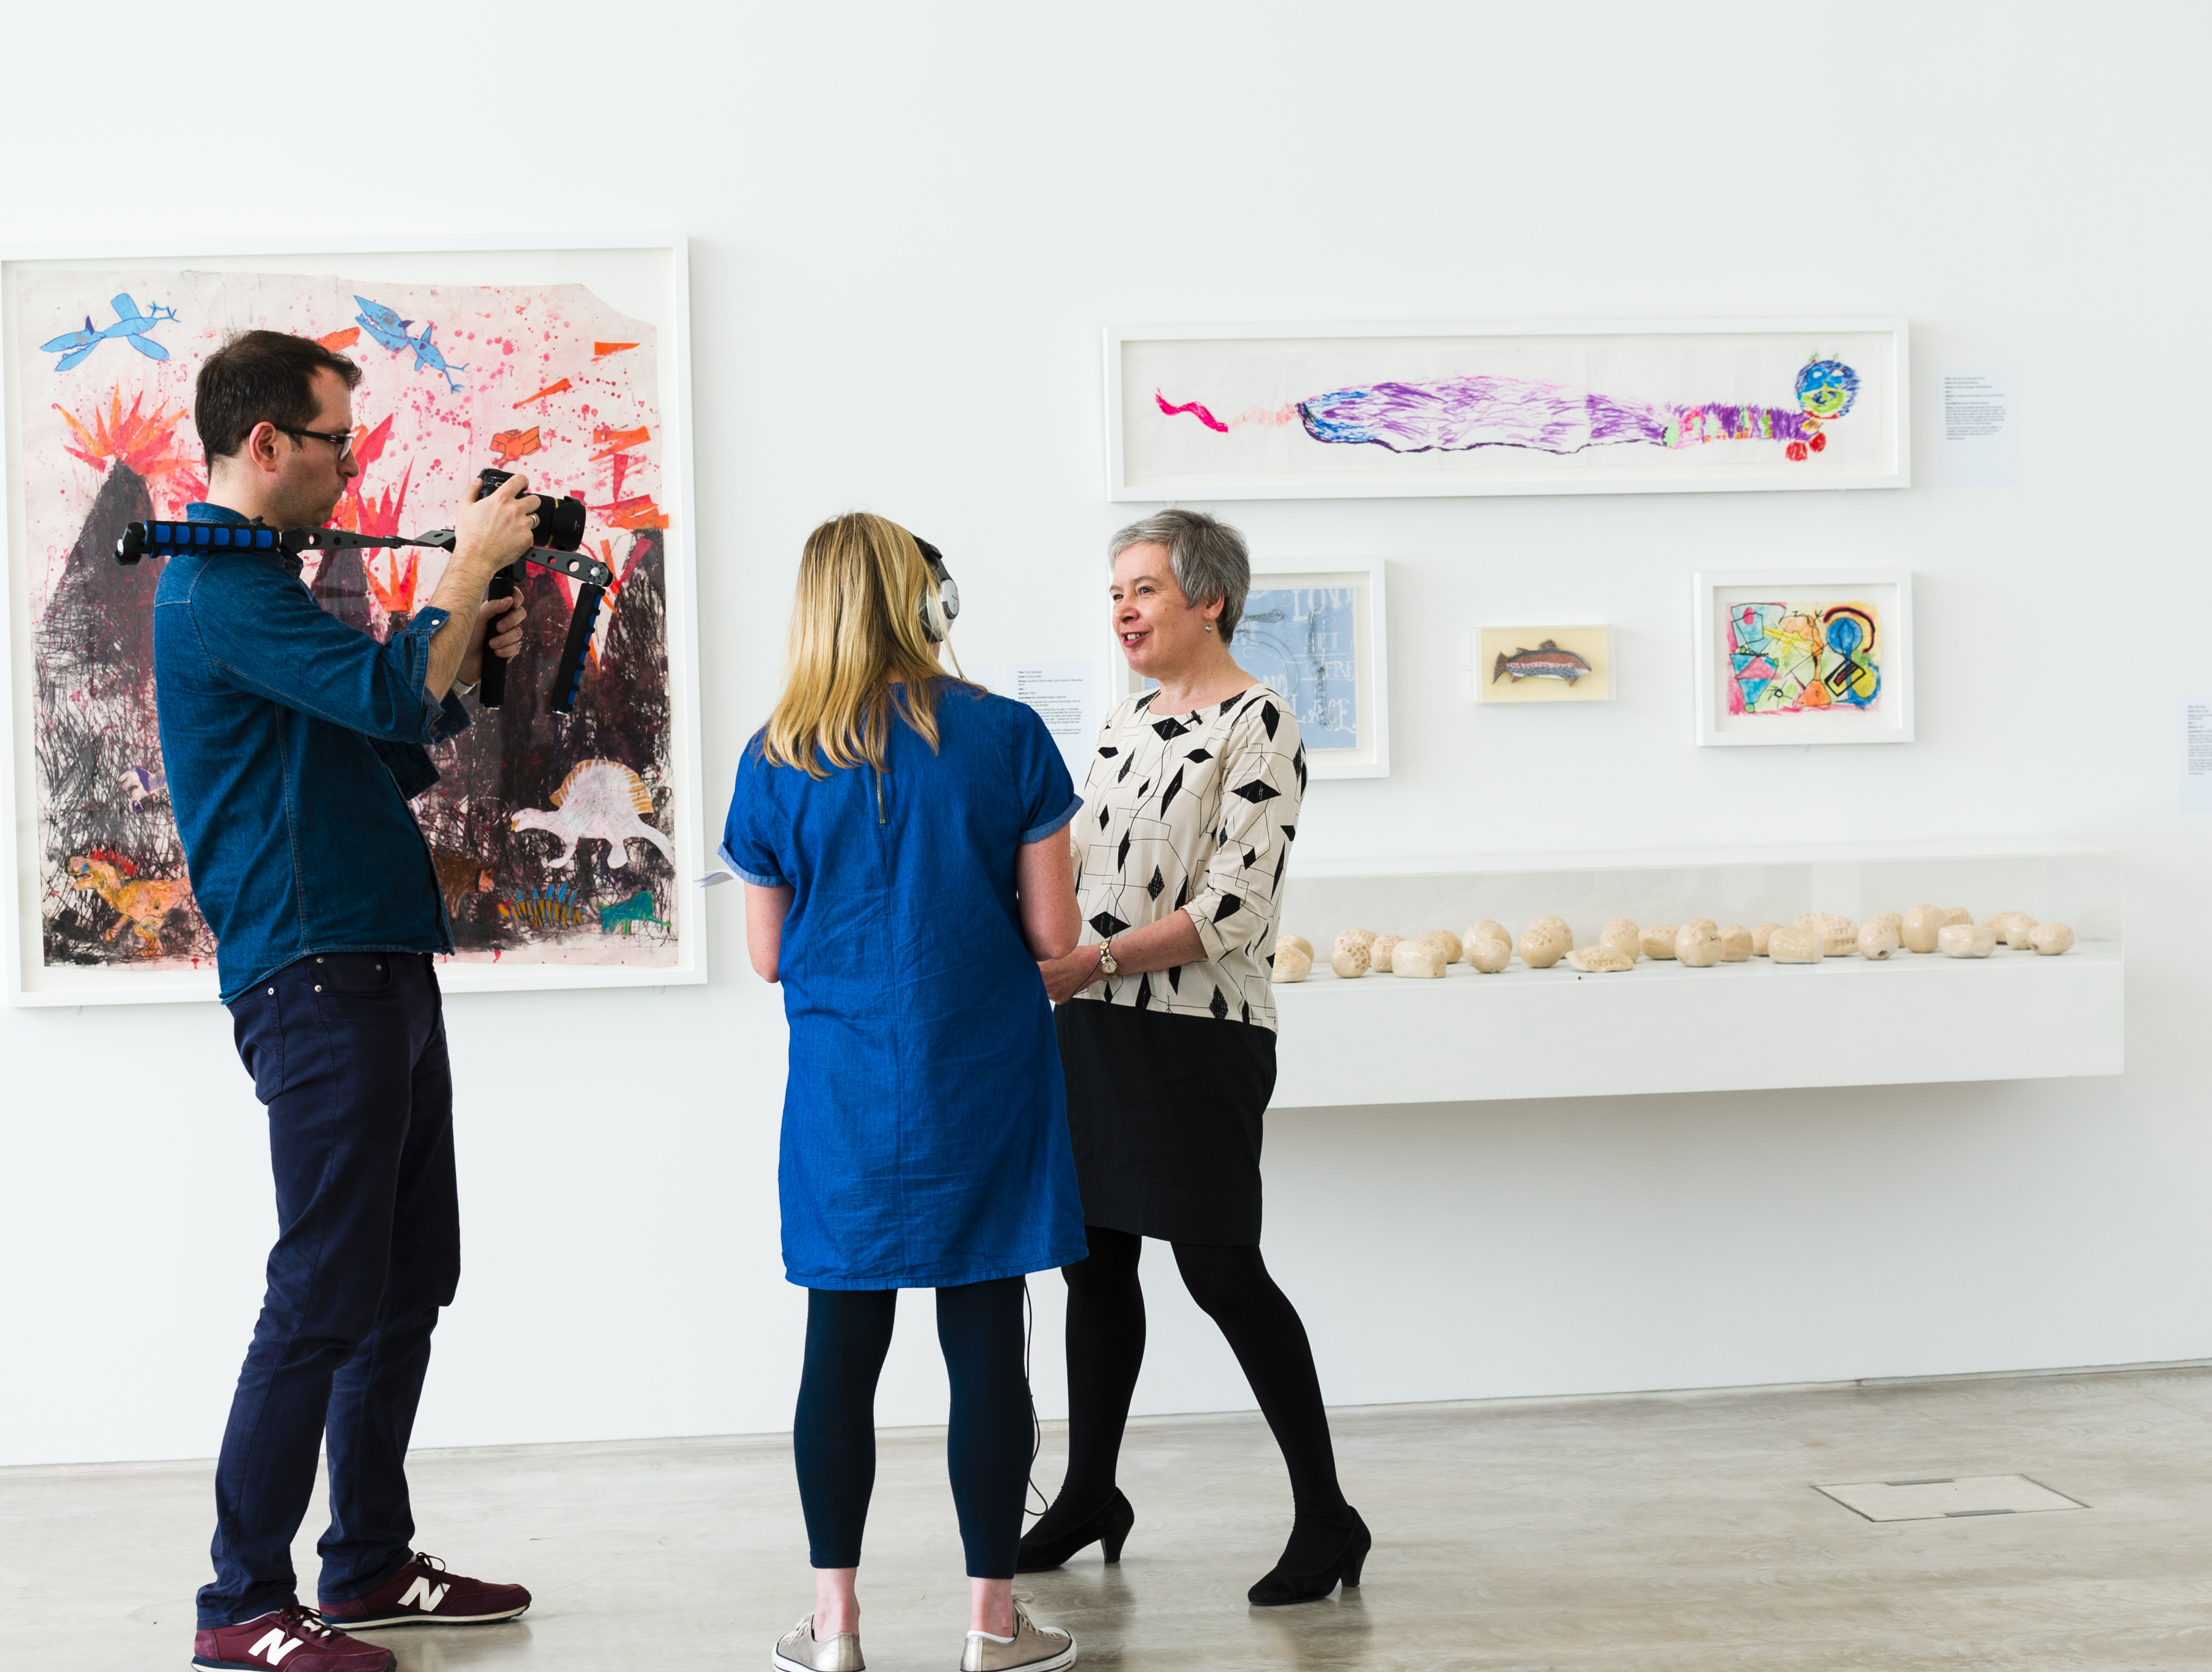 Jane Sillis, engage interview at Turner Contemporary